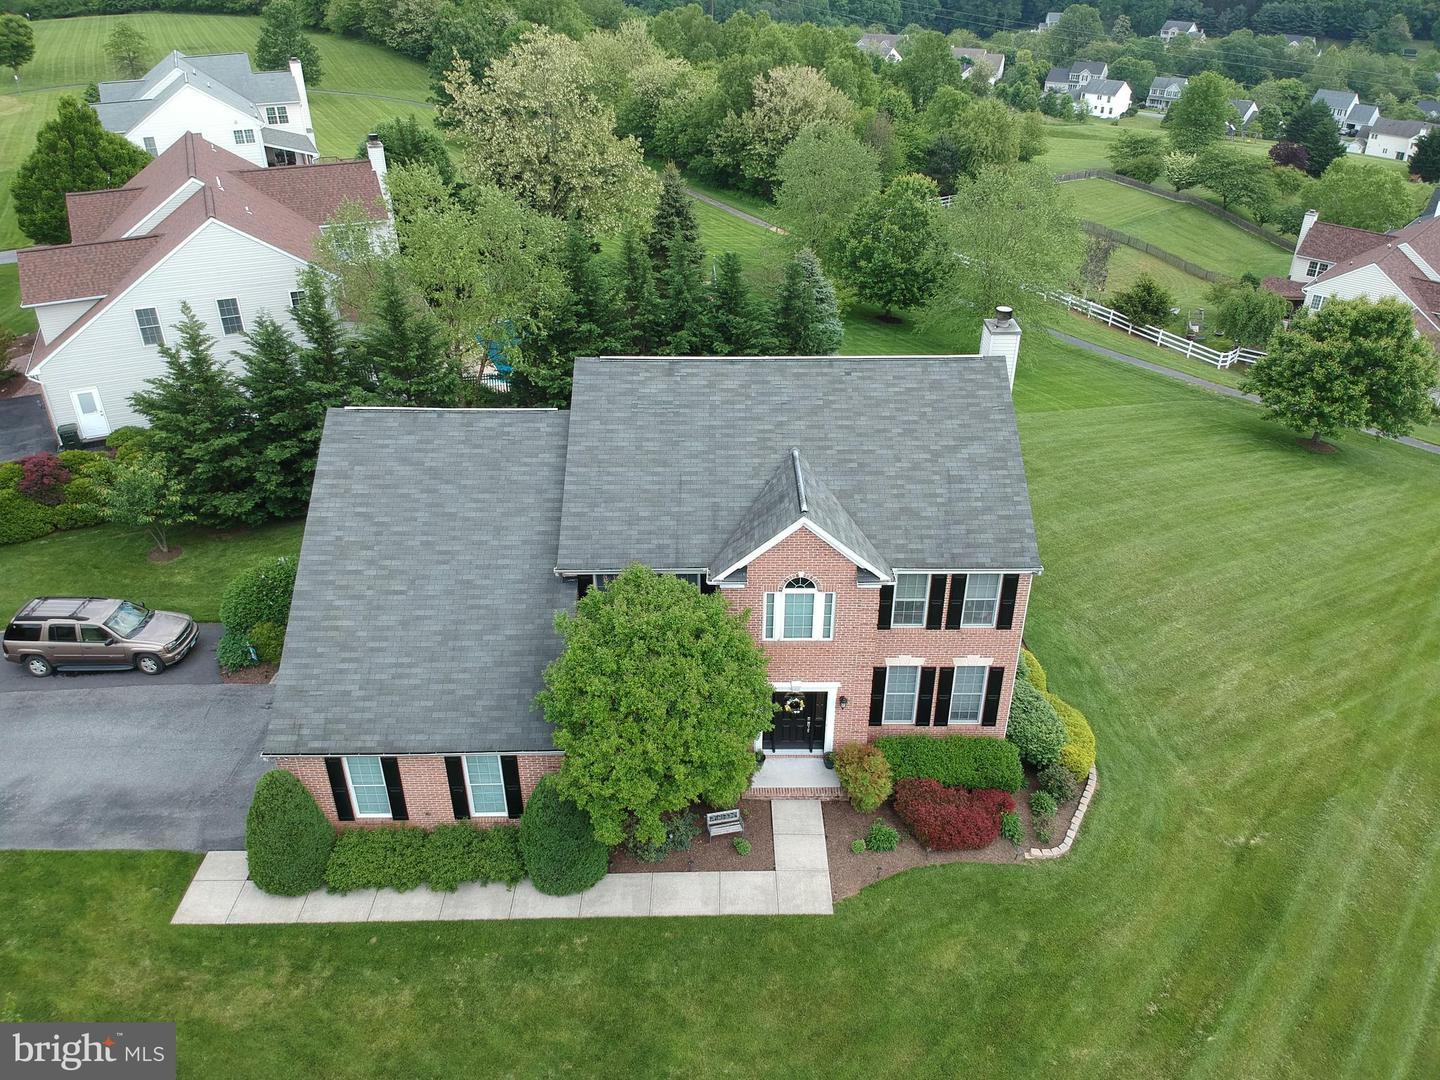 4401 Rob Mar Dr Mount Airy MD 21771